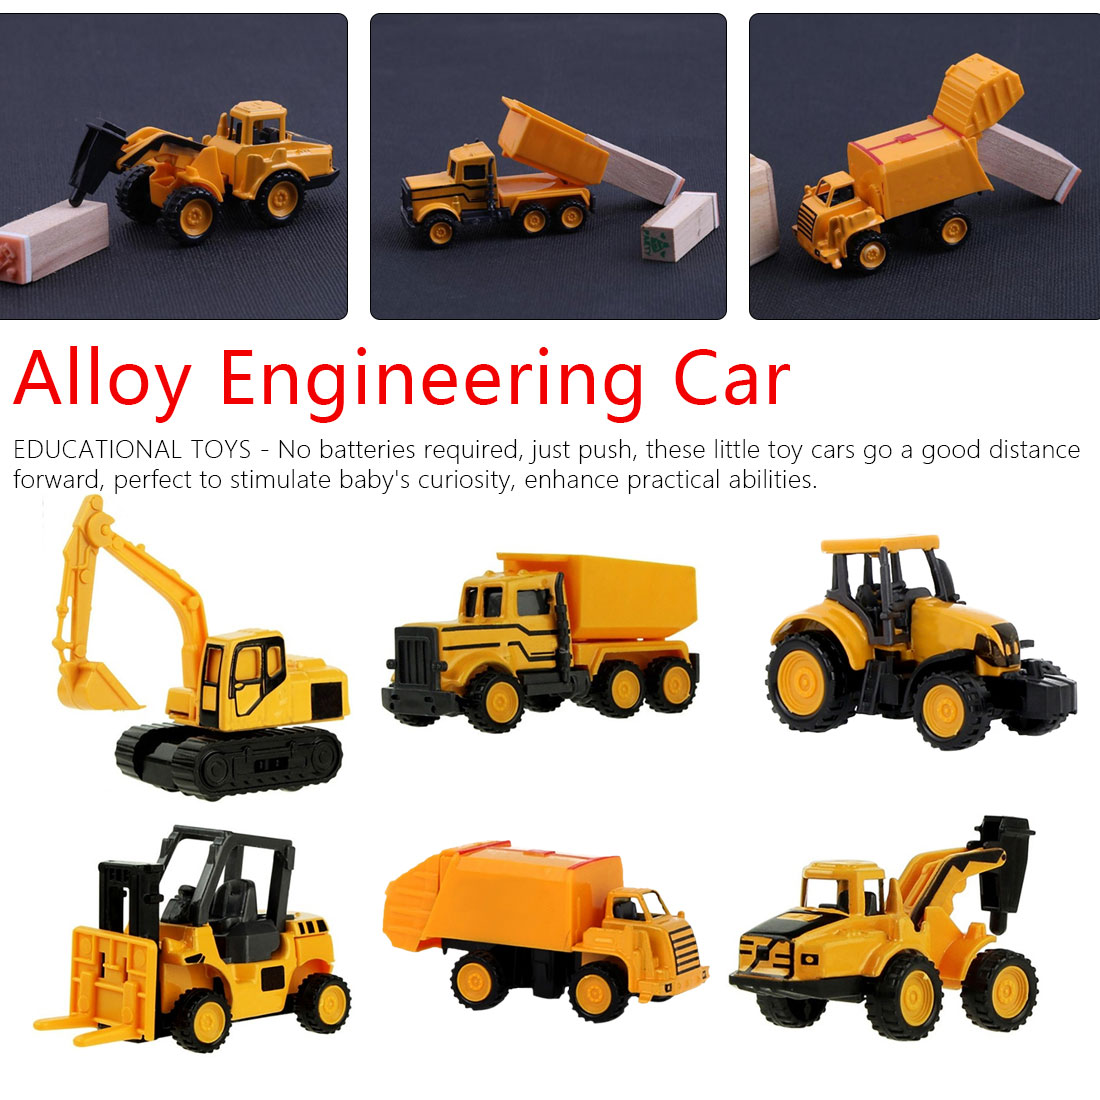 Mini Alloy Diecast Engineering Toy Vehicle 1:64 Metal Car Set Dump Truck Forklift Excavator Mixer Tractor Toys Children Gift